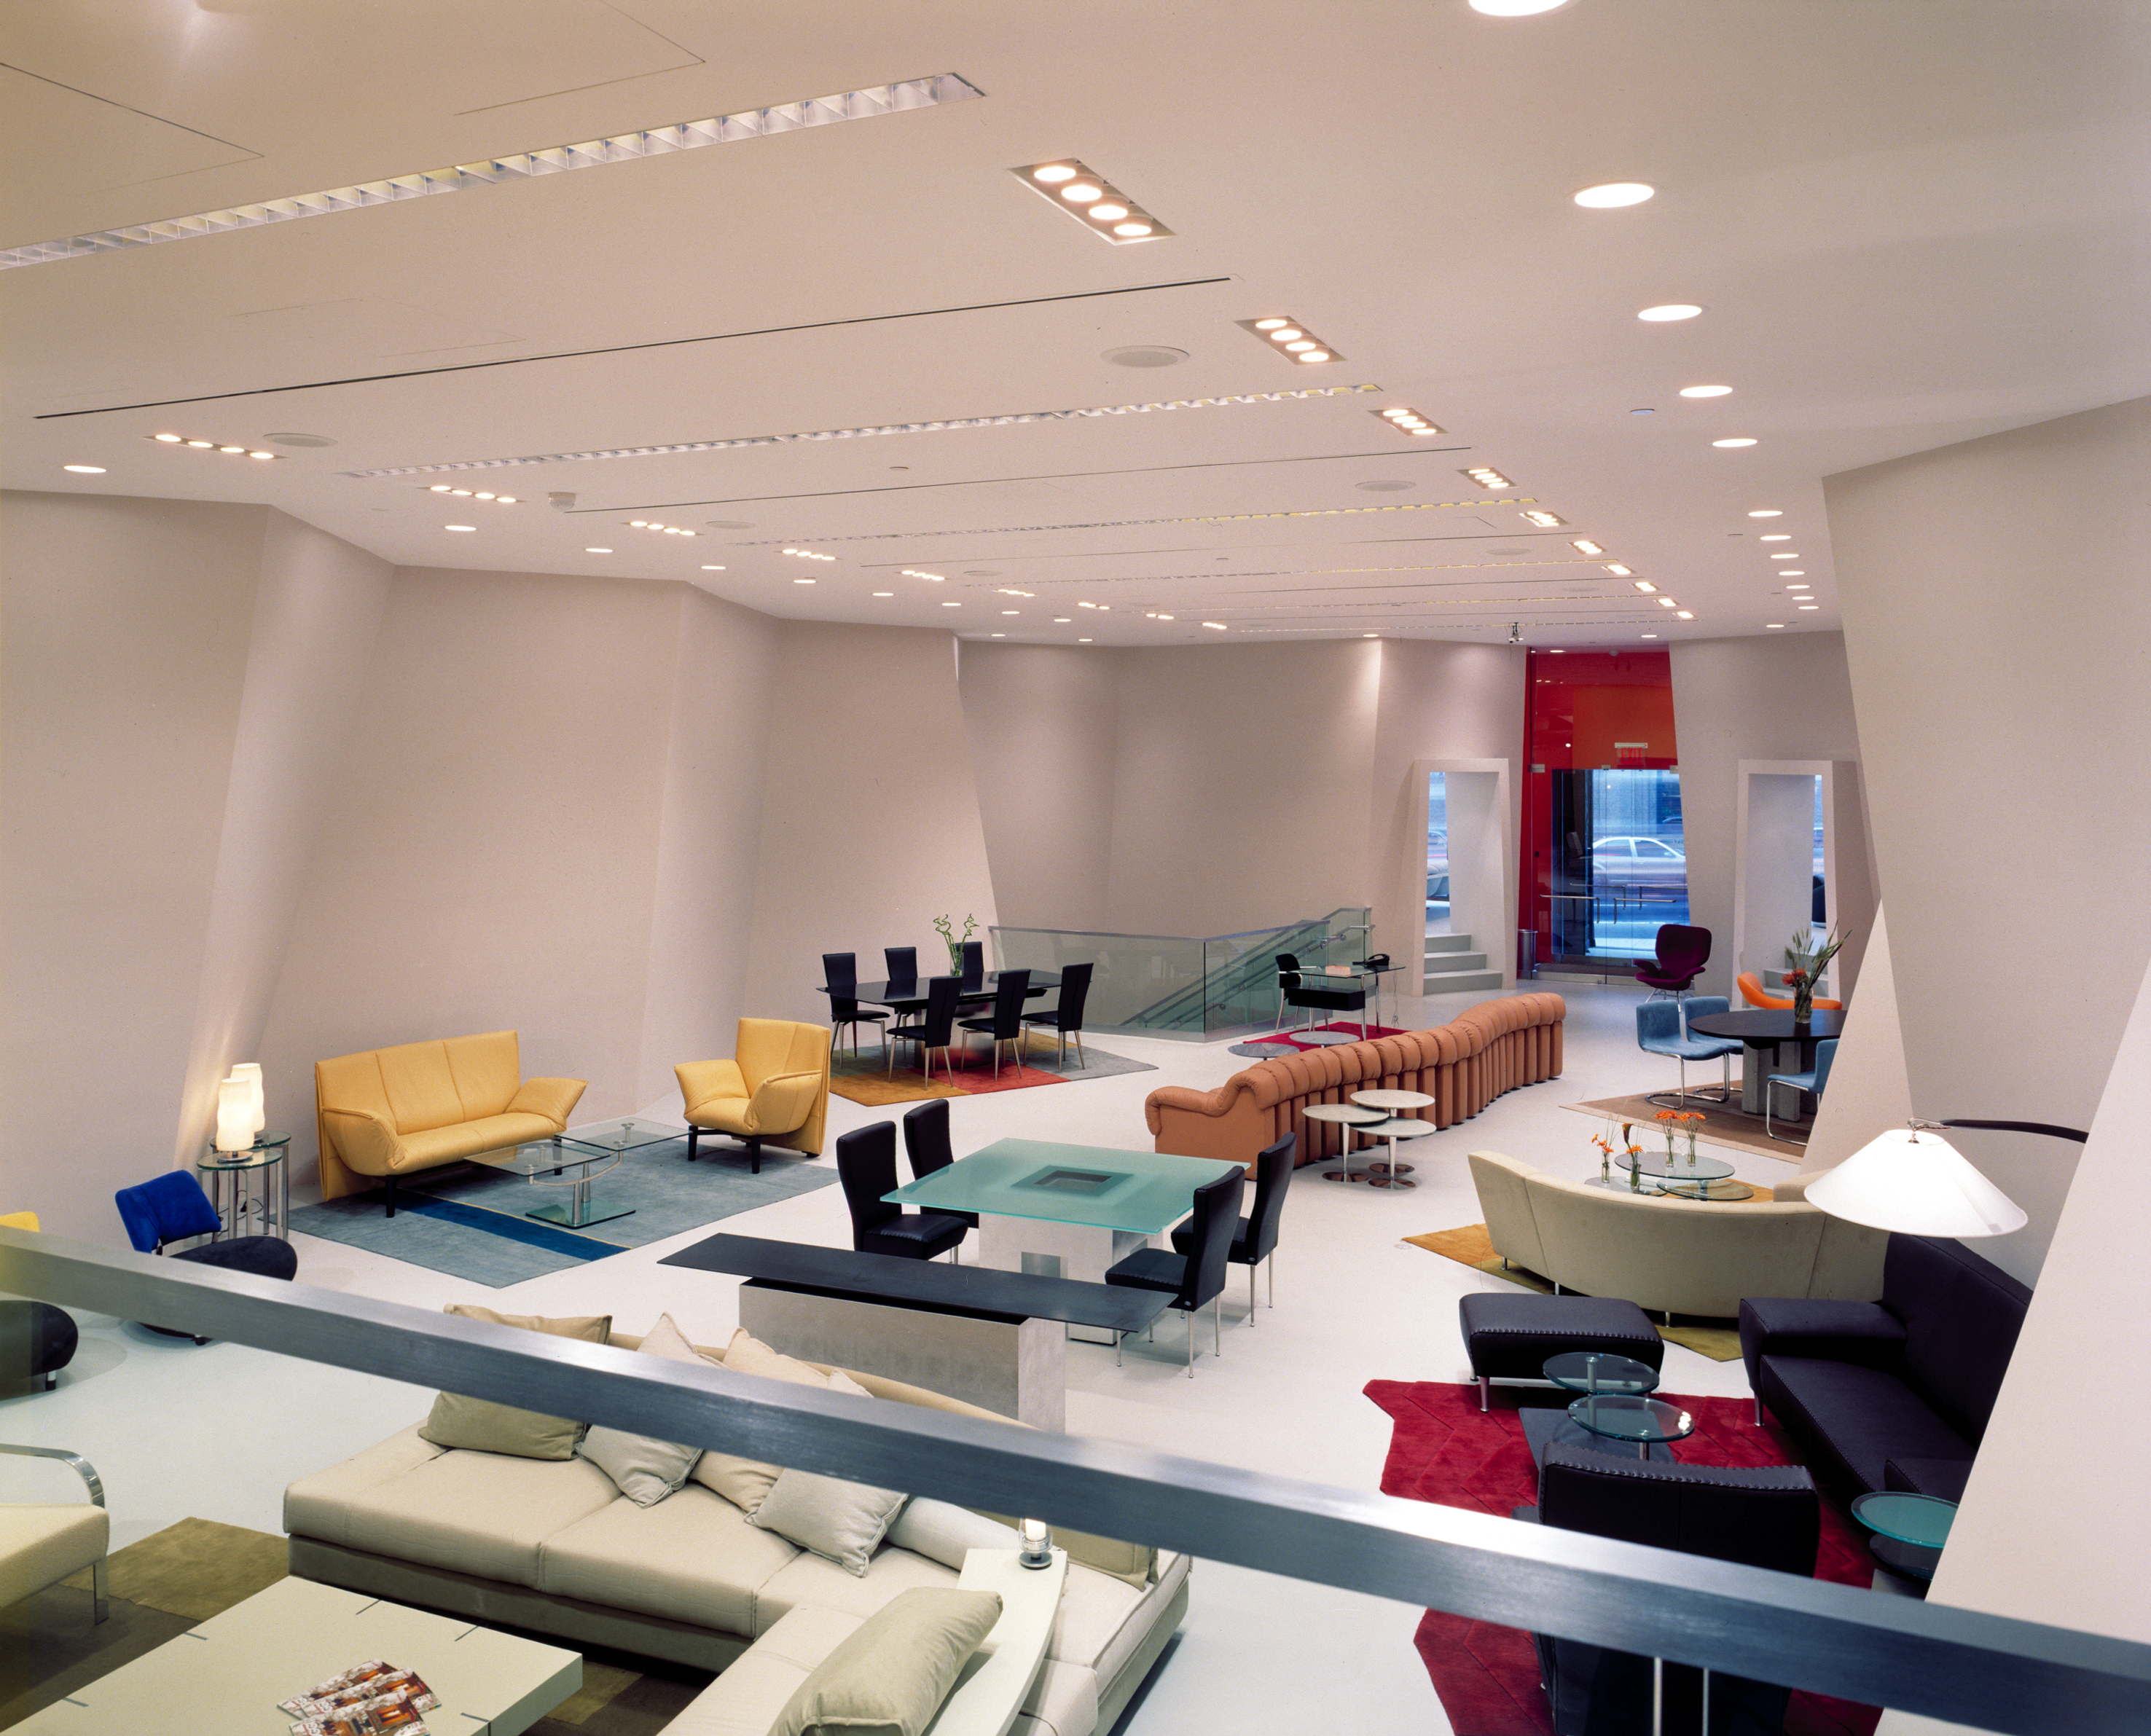 File:DDC (Domus Design Collection) Showroom